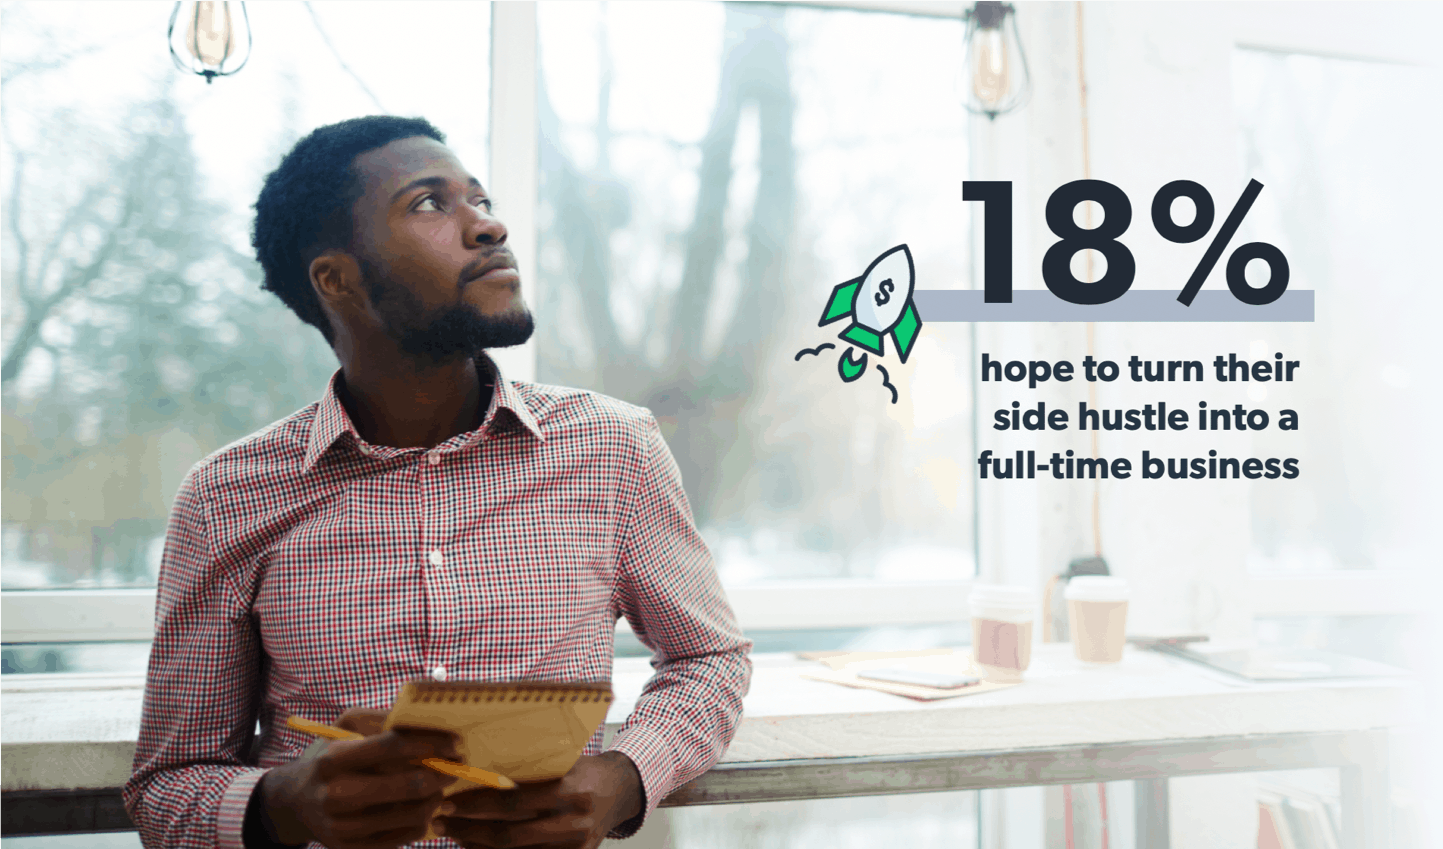 18 percent of respondent said they wanted to turn their side hustle into a full time business